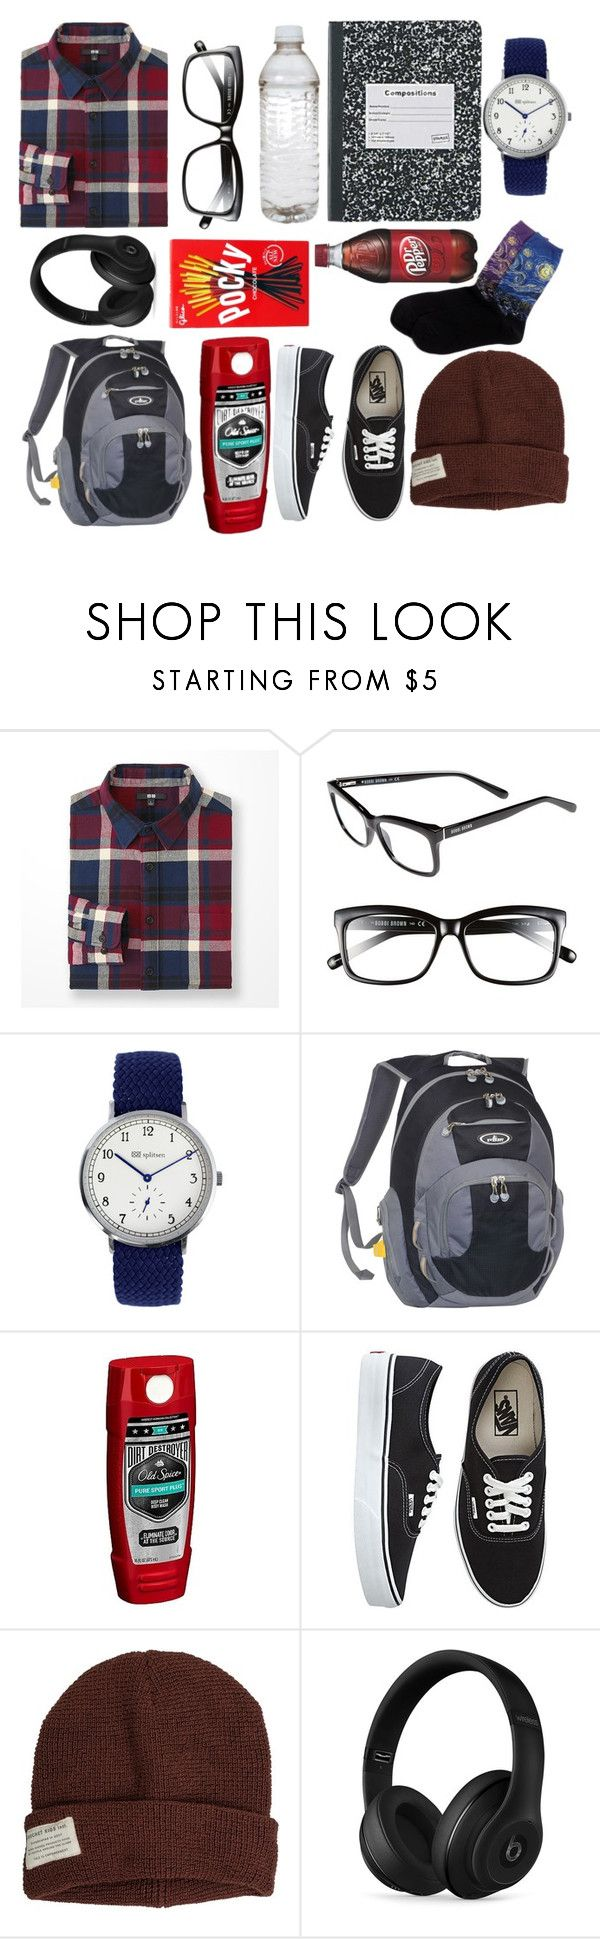 """""""Peter Parker"""" by thatonekidintheroom ❤ liked on Polyvore featuring Uniqlo, Bobbi Brown Cosmetics, Everest, Old Spice, Vans, Krochet Kids, Beats by Dr. Dre, HOT SOX, men's fashion and menswear"""